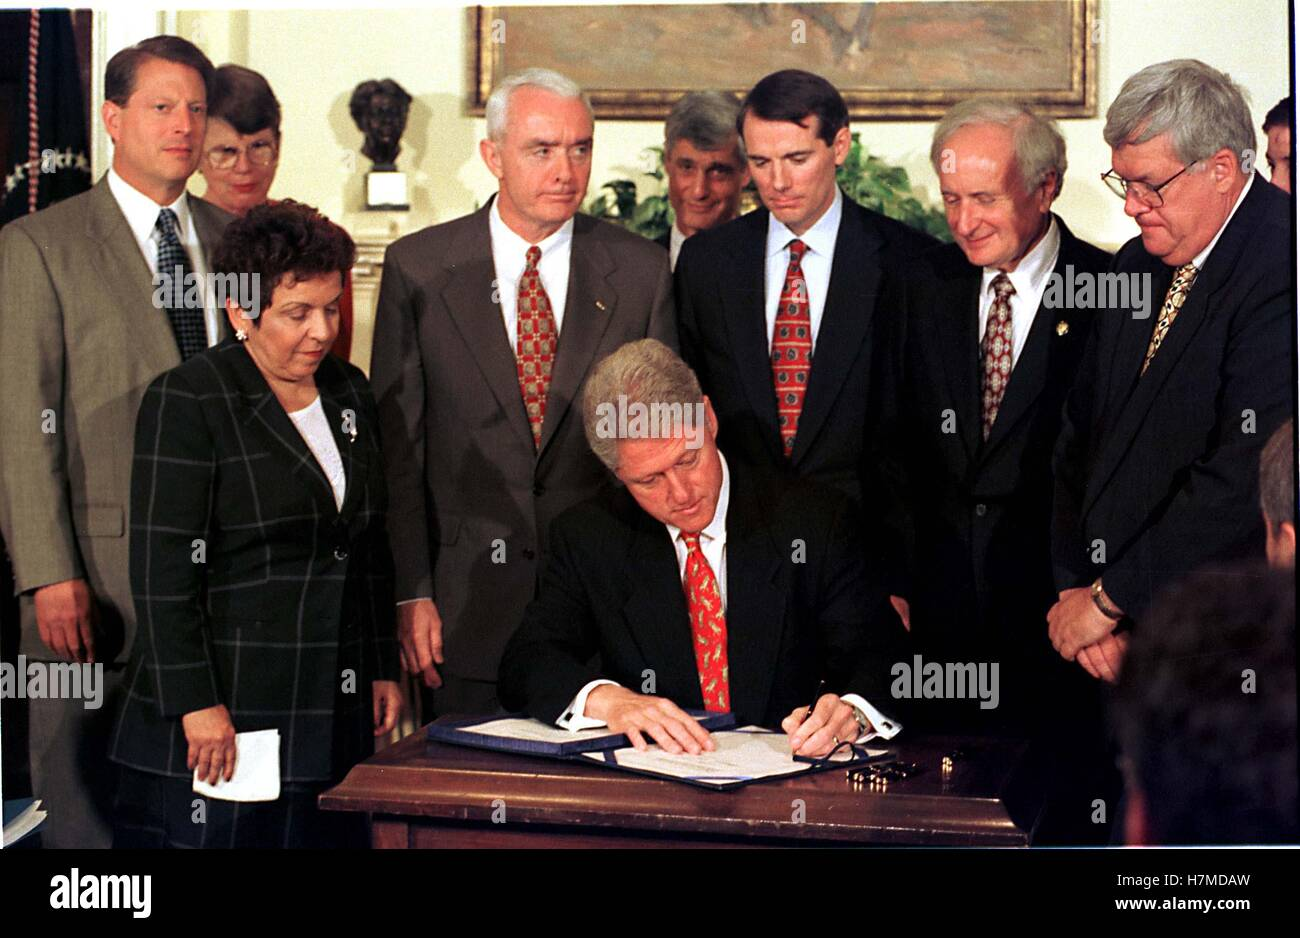 June 27, 1997 - Washington, District of Columbia, United States of America - United States President Bill Clinton - Stock Image